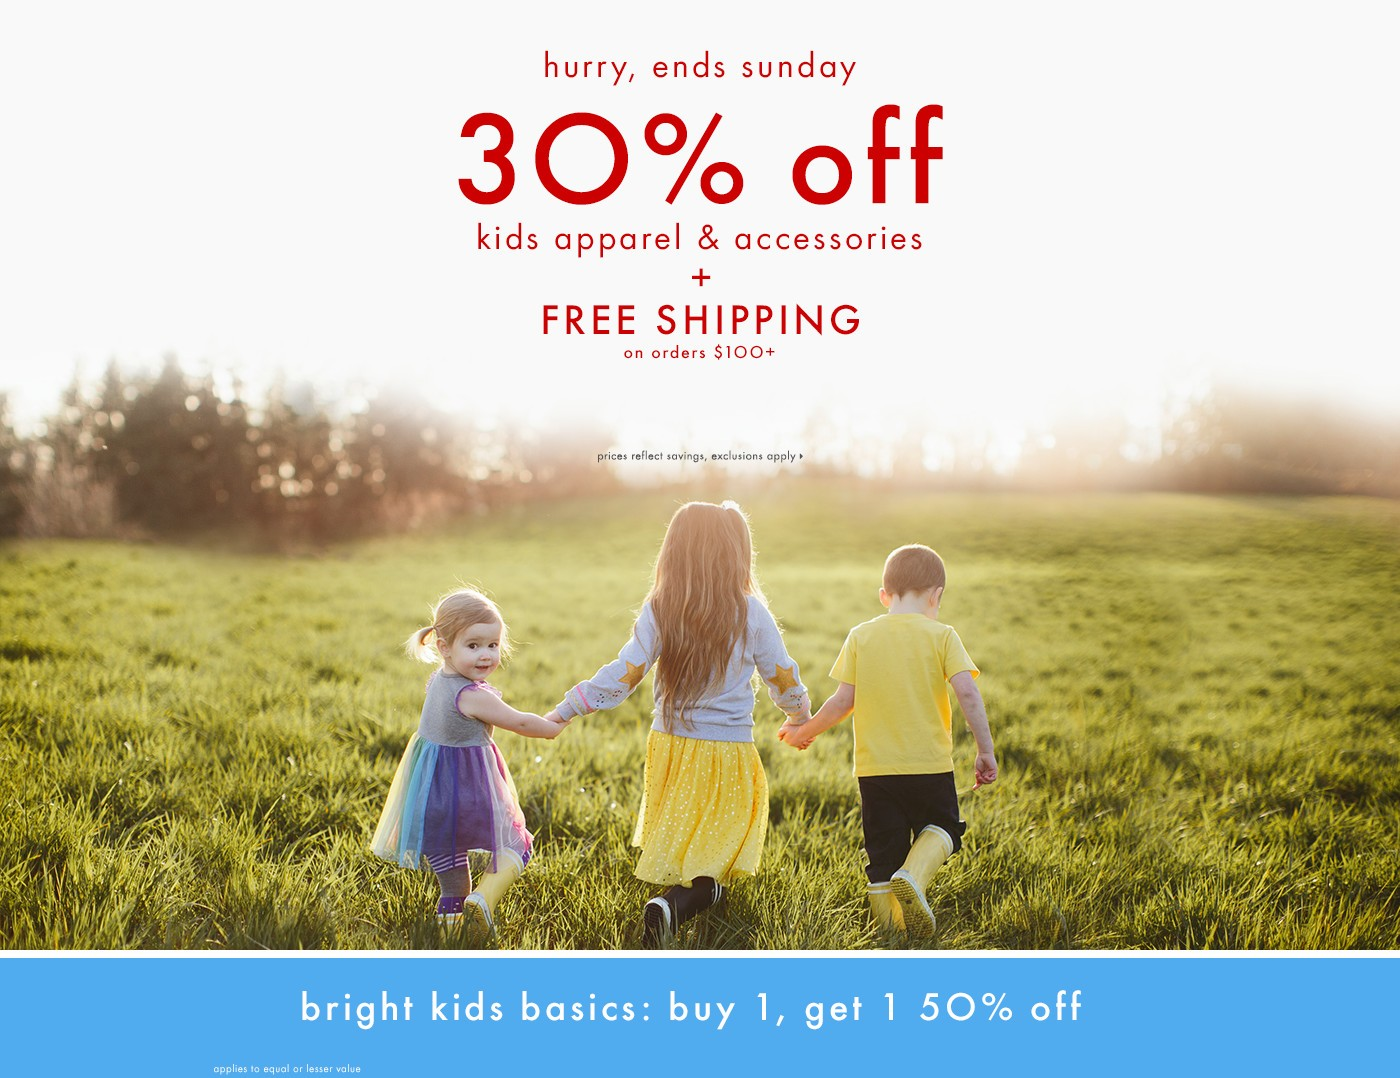 Hurry, ends Sunday. 30% off kids apparel and accessories with free shipping on orders $100 and up.